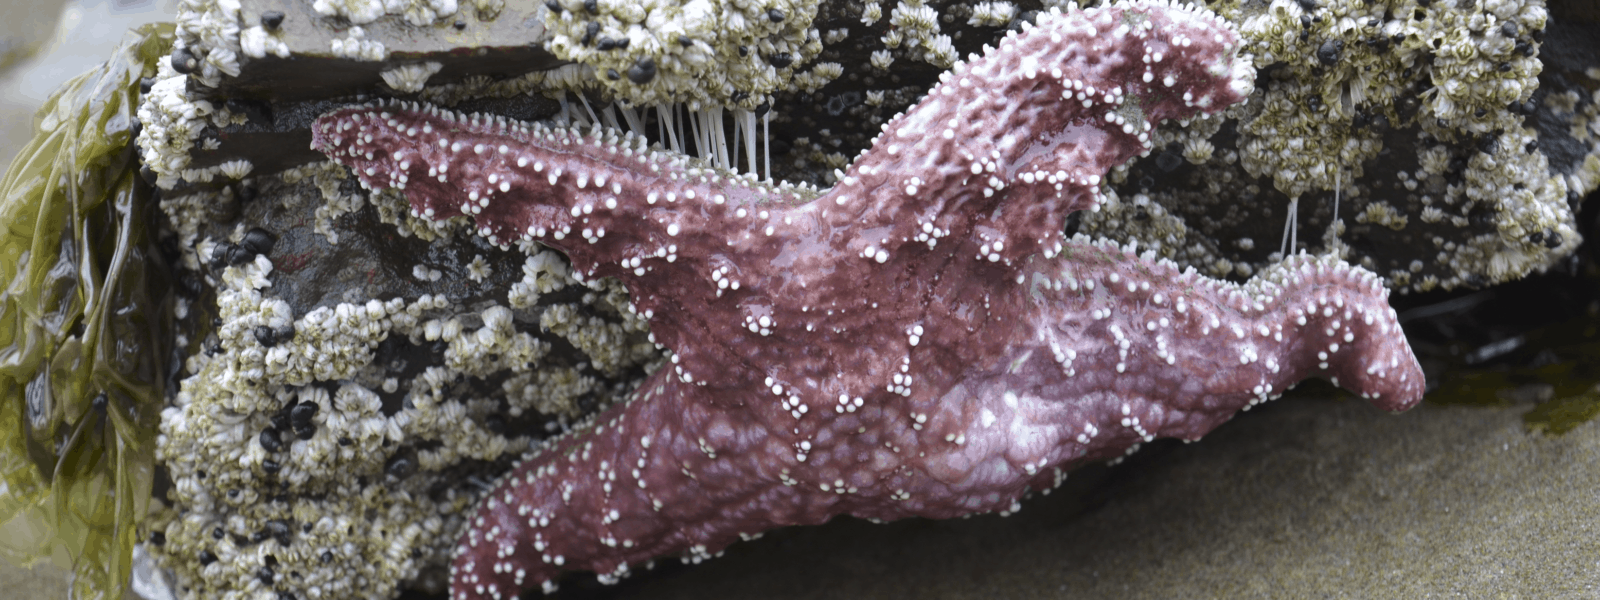 Animals in the Tidal Pools and on the Oregon Coast